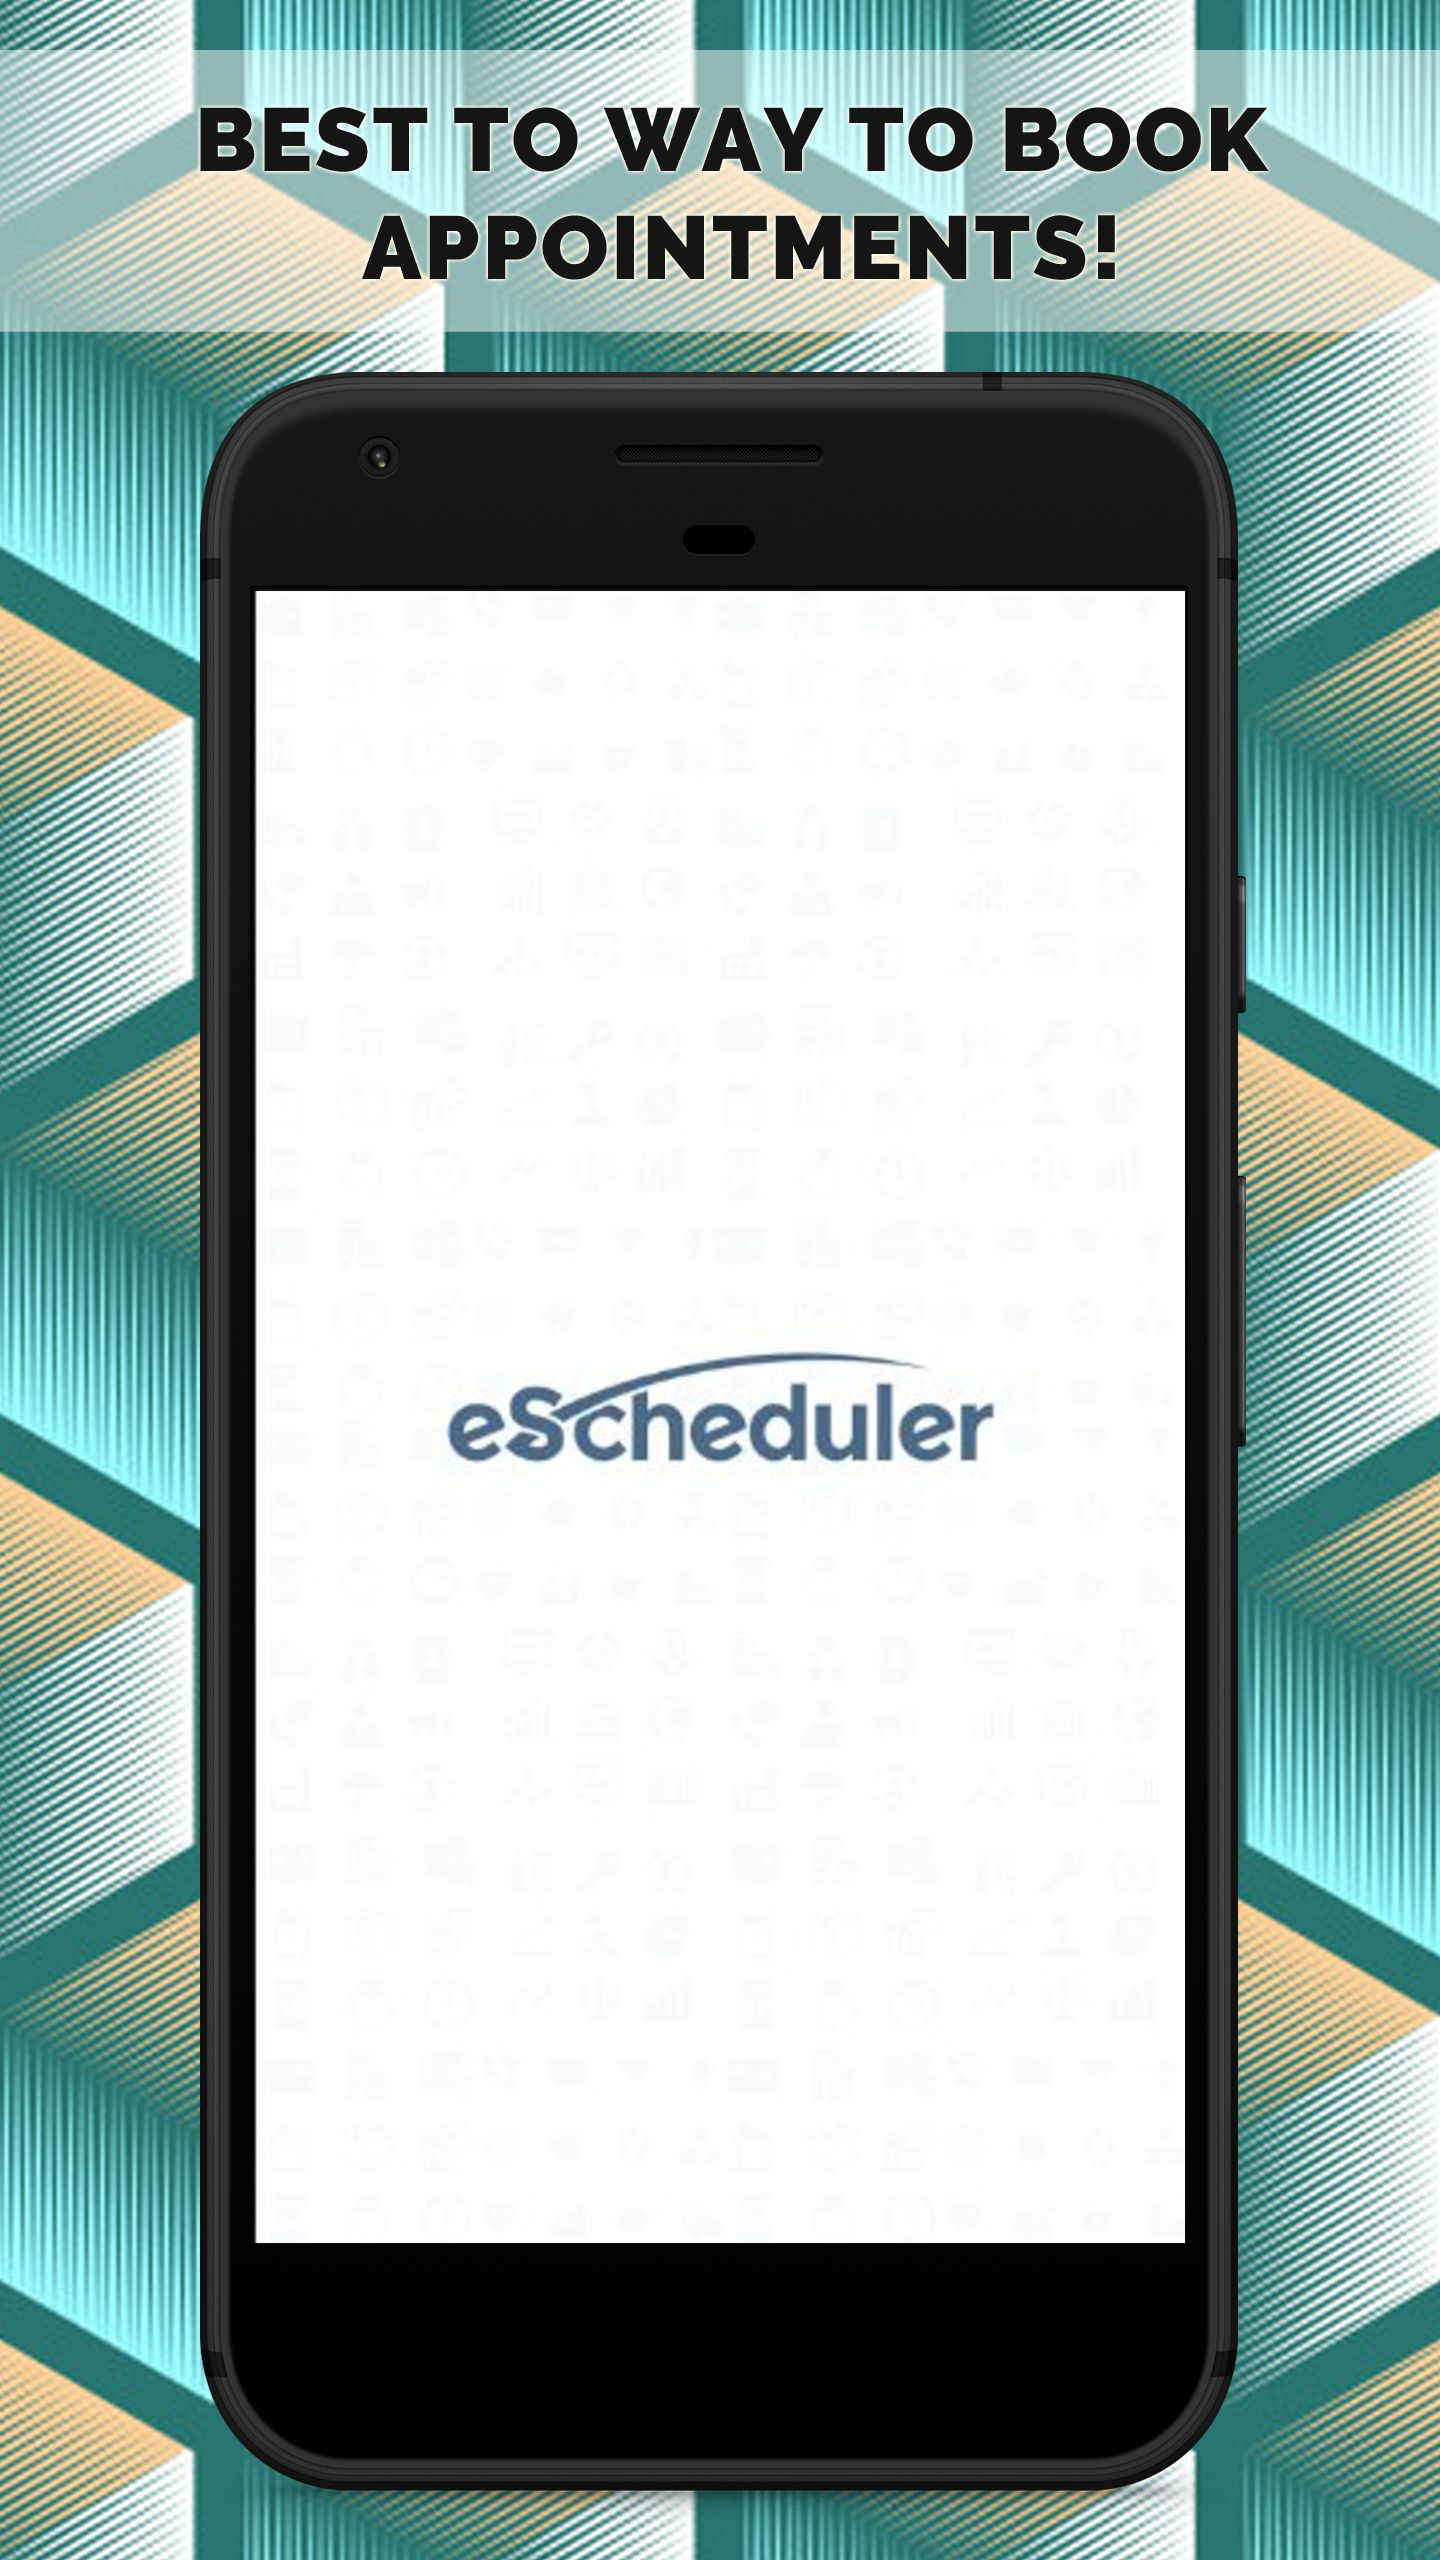 by using appointment scheduling app, you can manage and